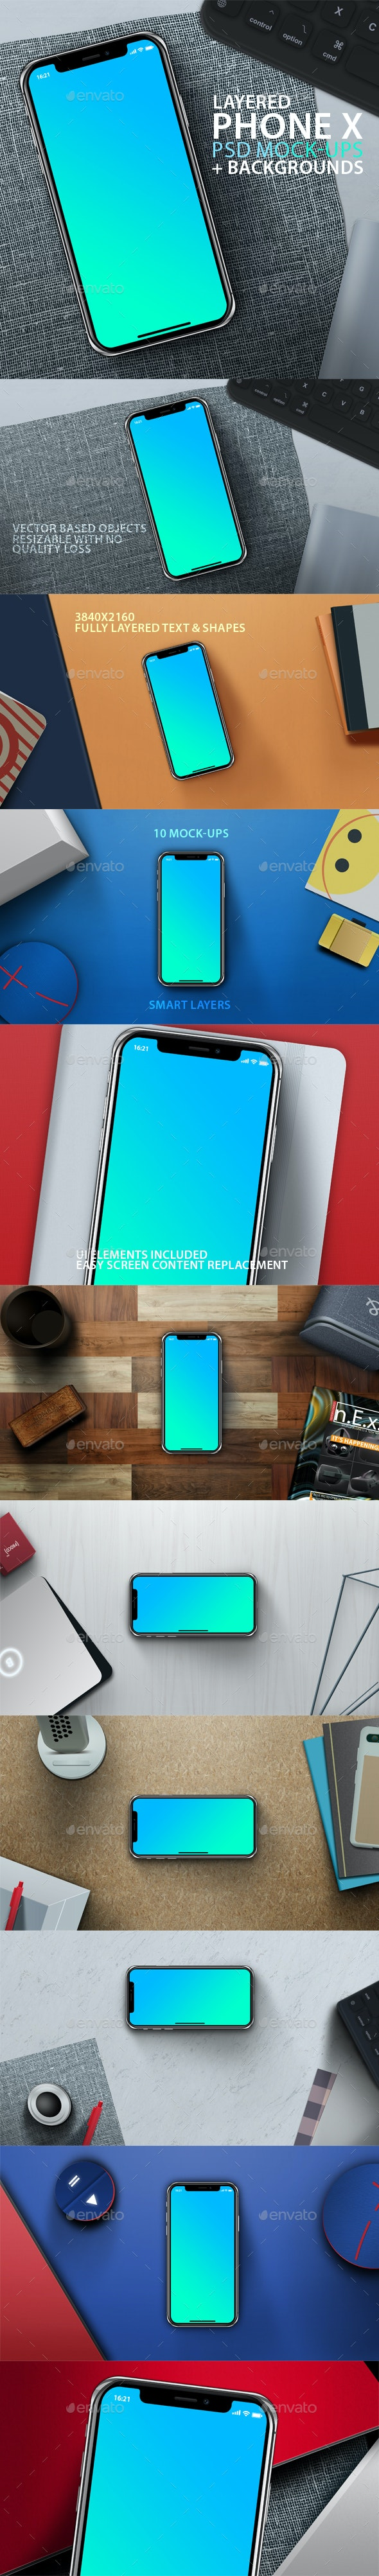 PhoneX Layered PSD Mock-Ups with Backgrounds - Mobile Displays